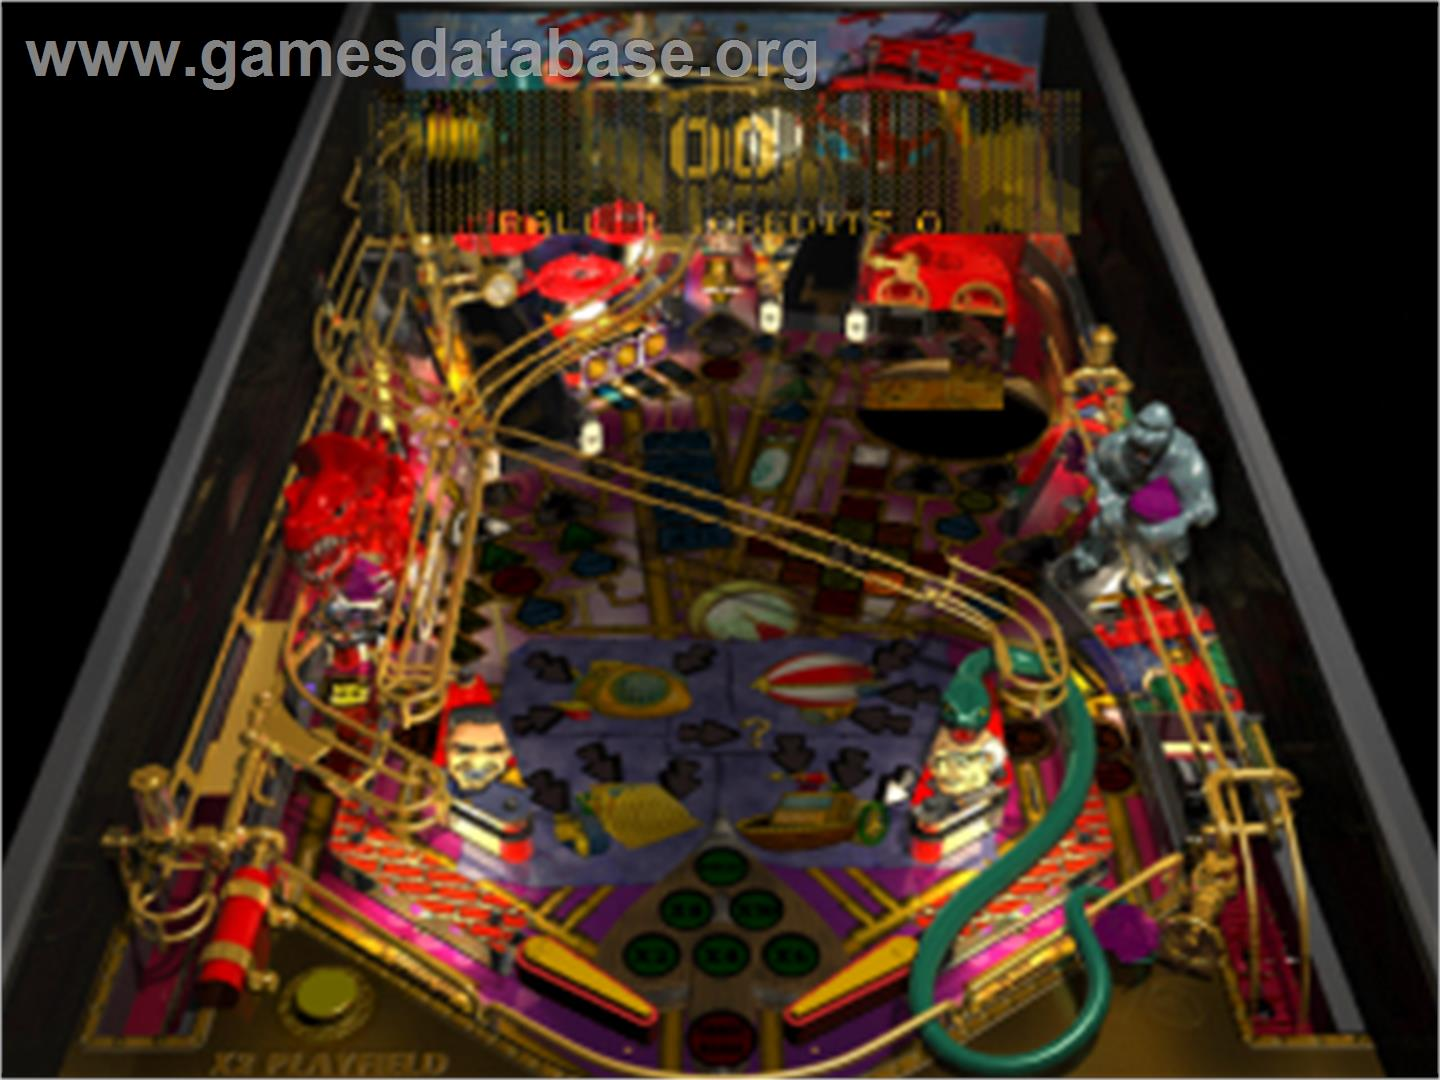 Pro Pinball: Fantastic Journey - Sony Playstation - Artwork - In Game